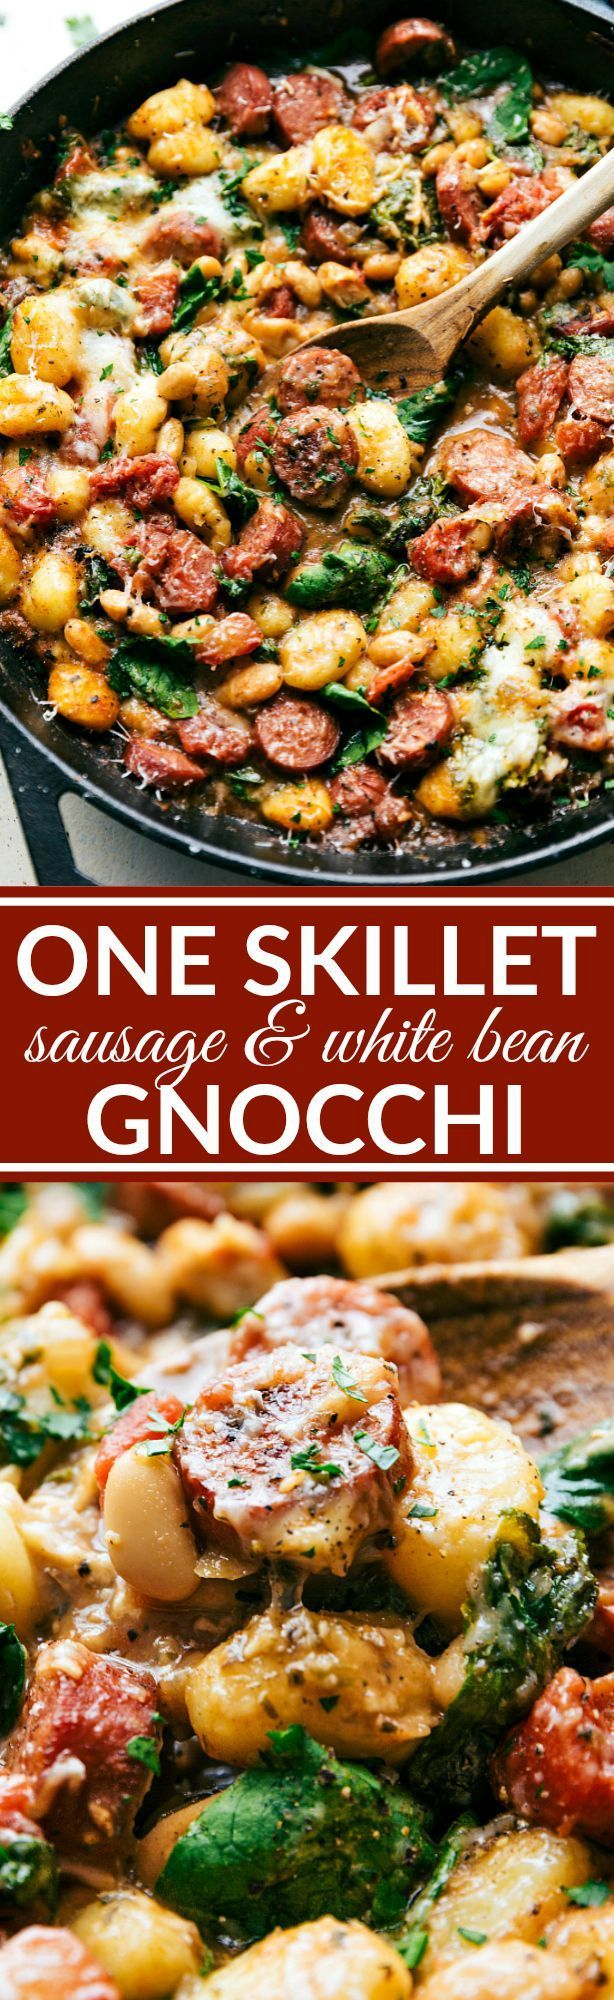 Only ONE skillet needed for a delicious 30 minute dinner recipe. Garlic, onion, sausage, white beans, gnocchi, tomatoes, and spinach plus spices and cheese mix together to make an incredible dinner in thirty minutes. Recipe via http://chelseasmessyapron.com